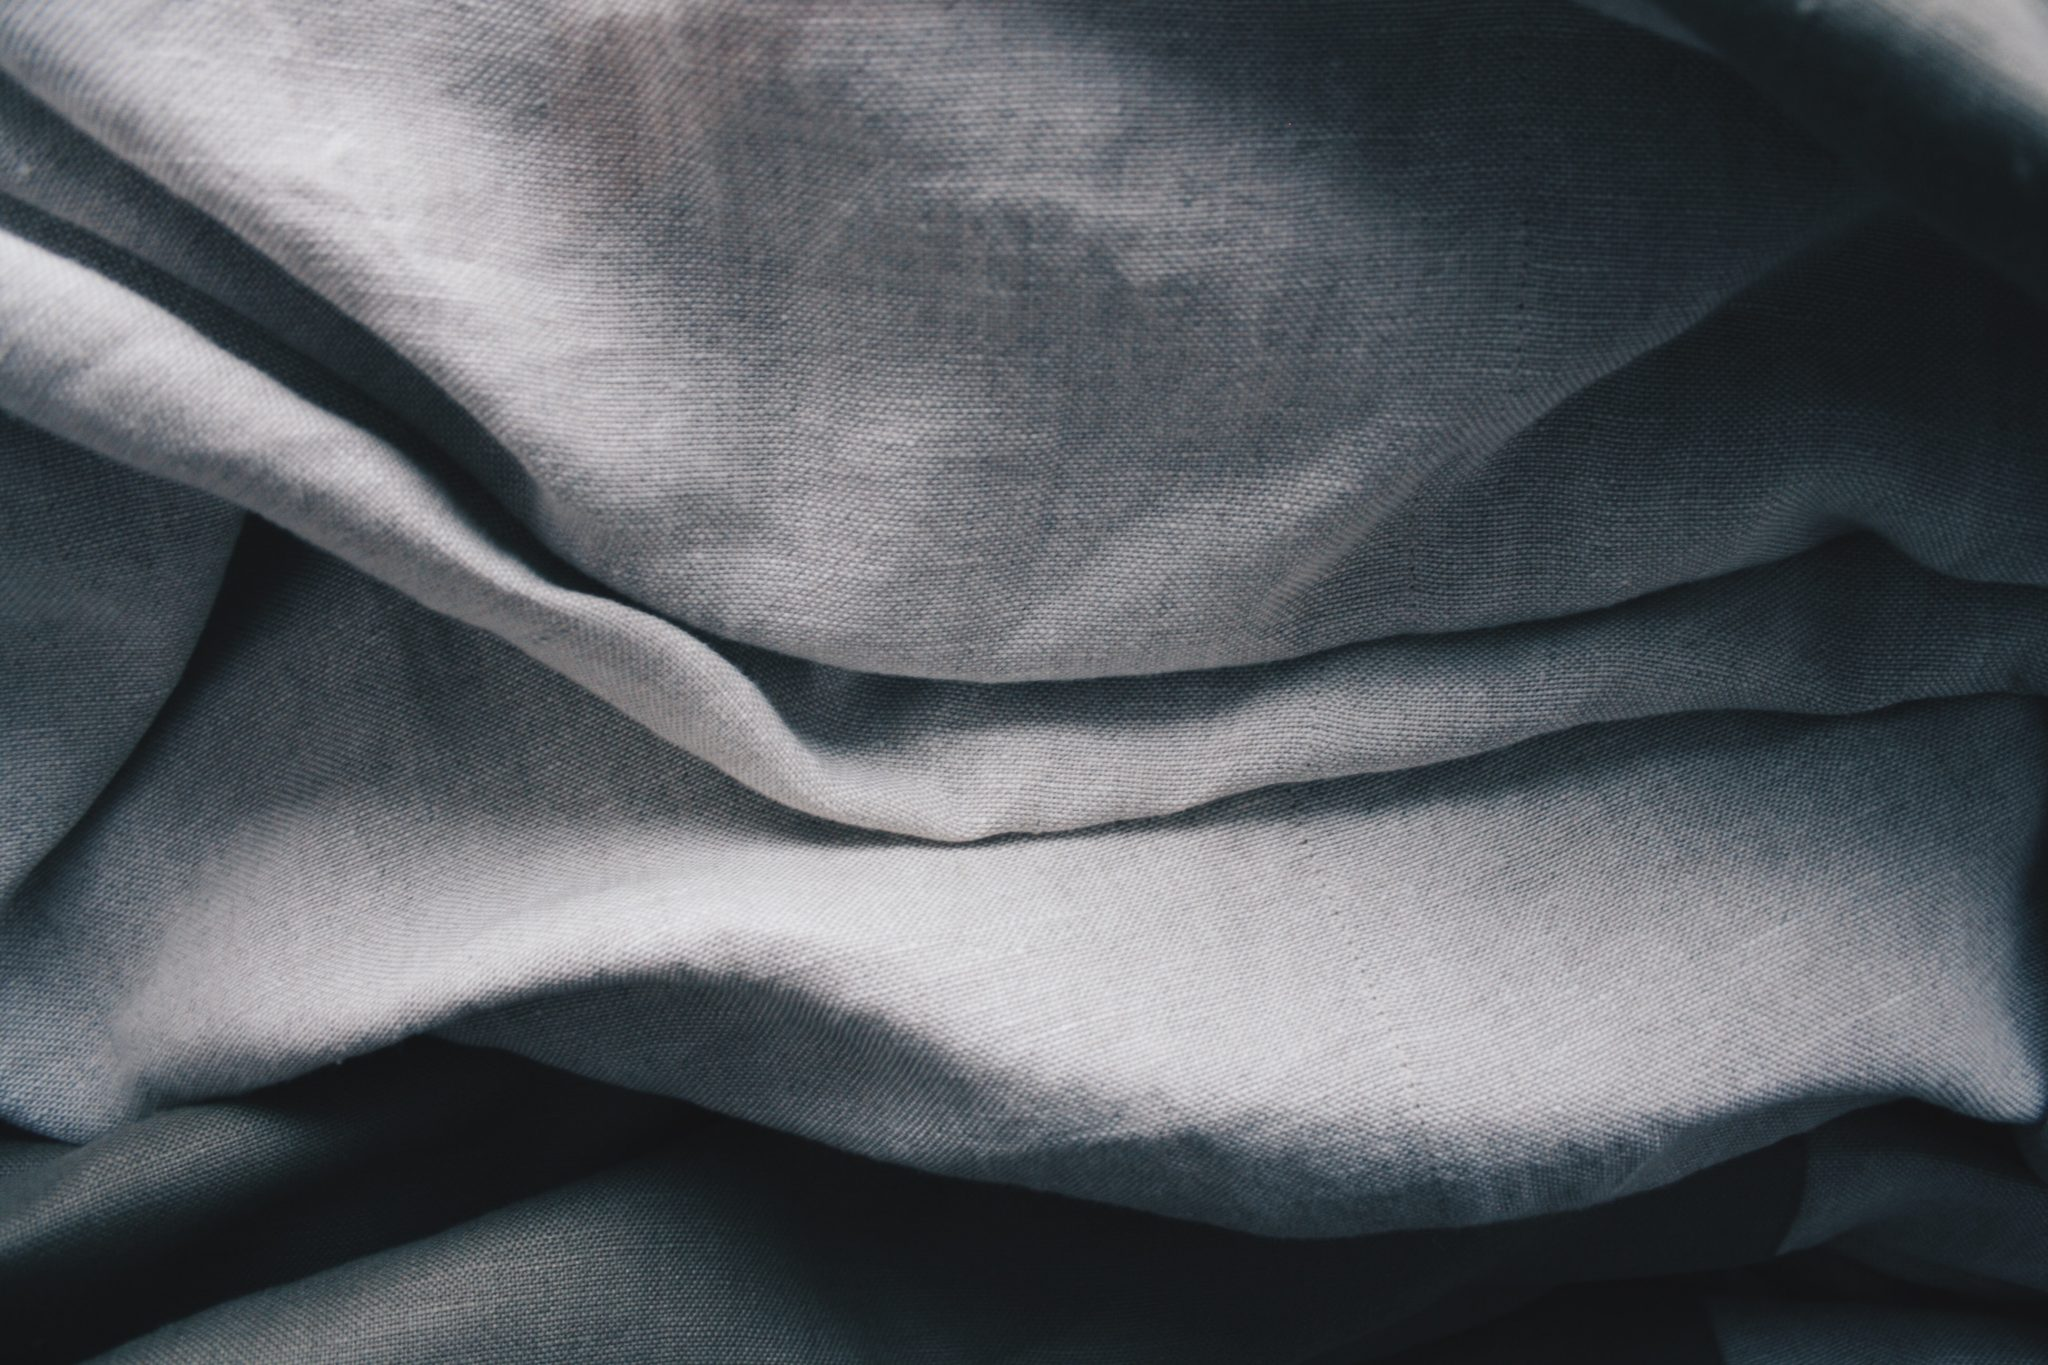 Ruffled muslin/hemp fabric